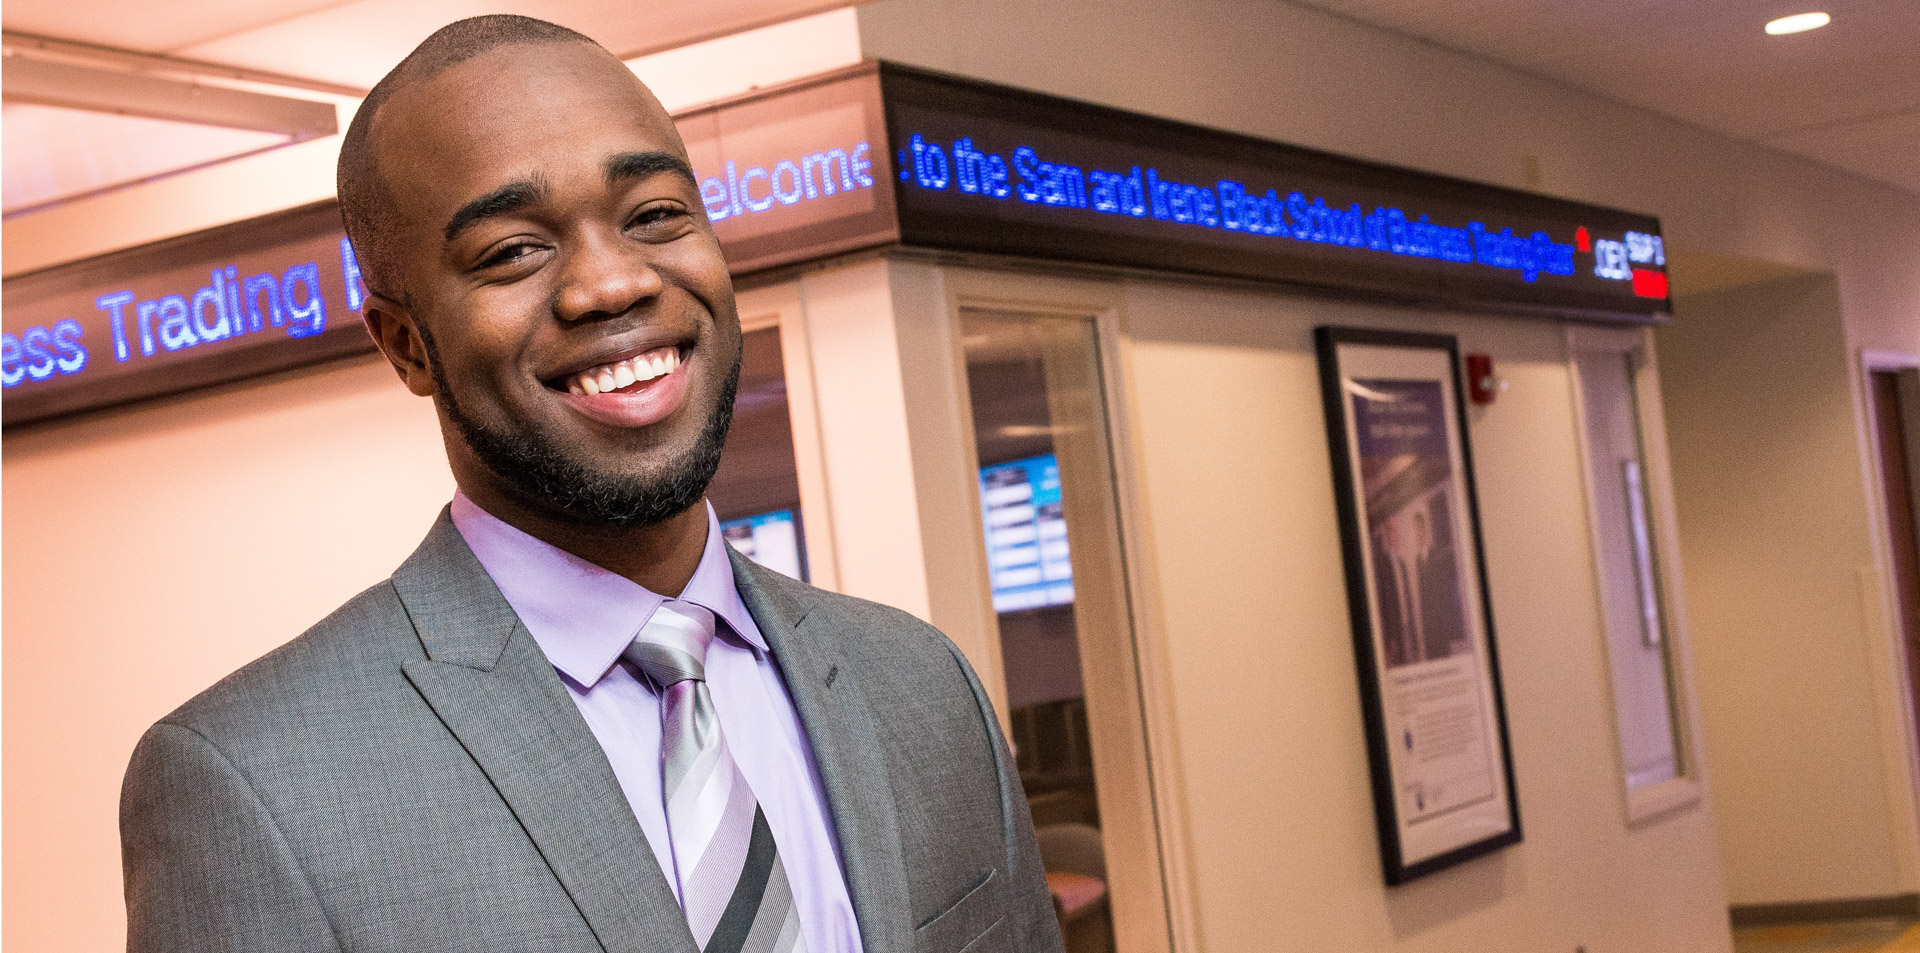 Student smiling in front of the electronic ticker outside Behrend's simulated trading floor lab